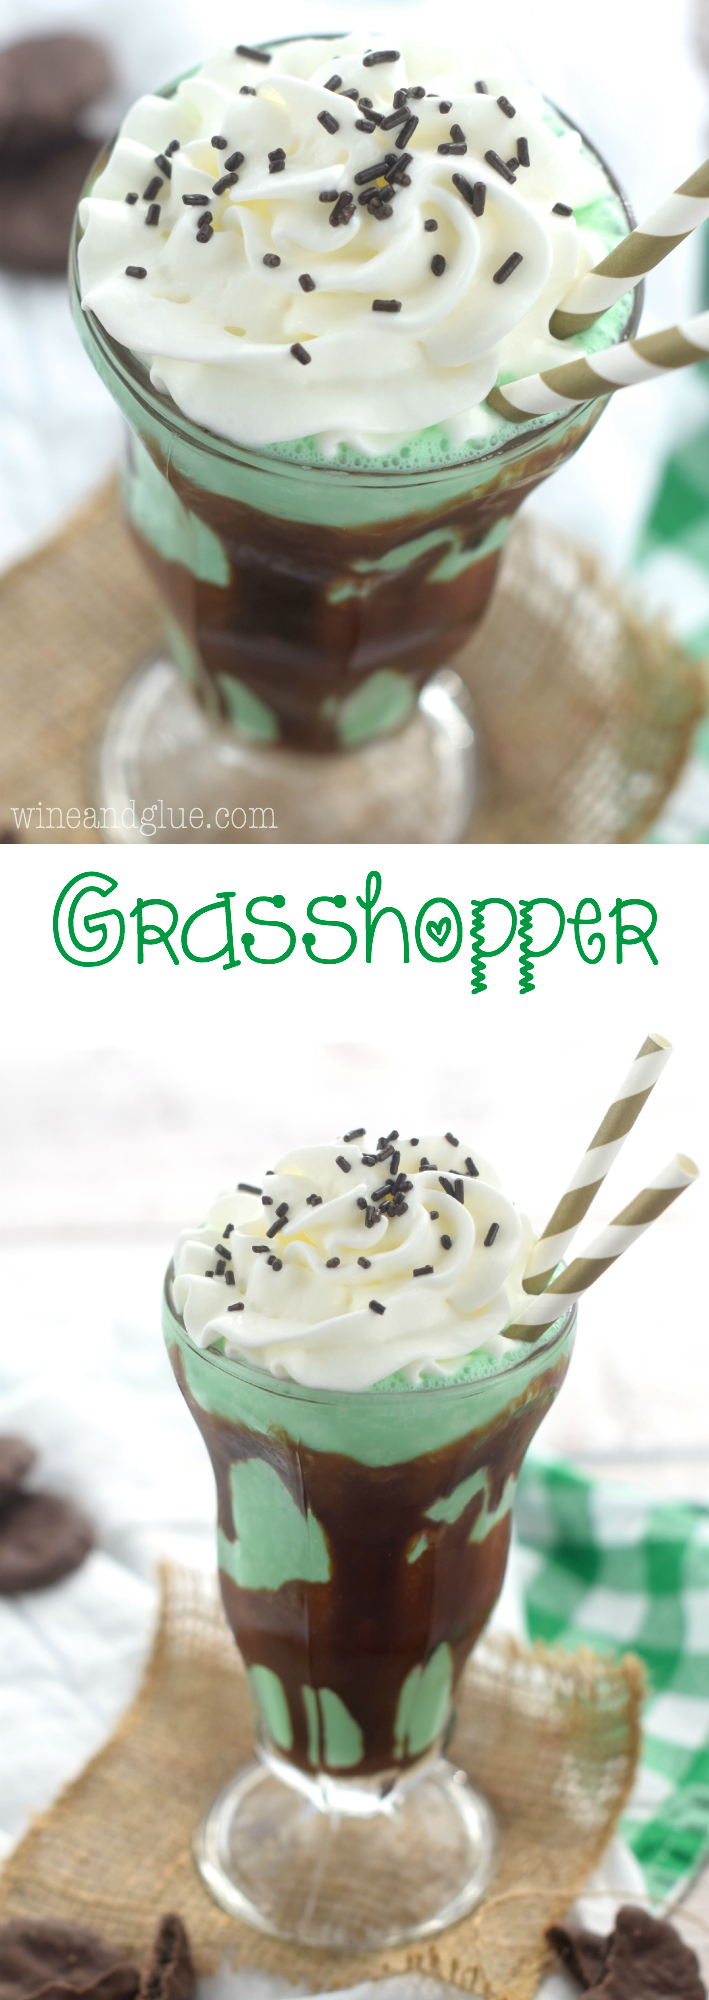 Grasshopper | Wine & Glue for Bread Booze Bacon